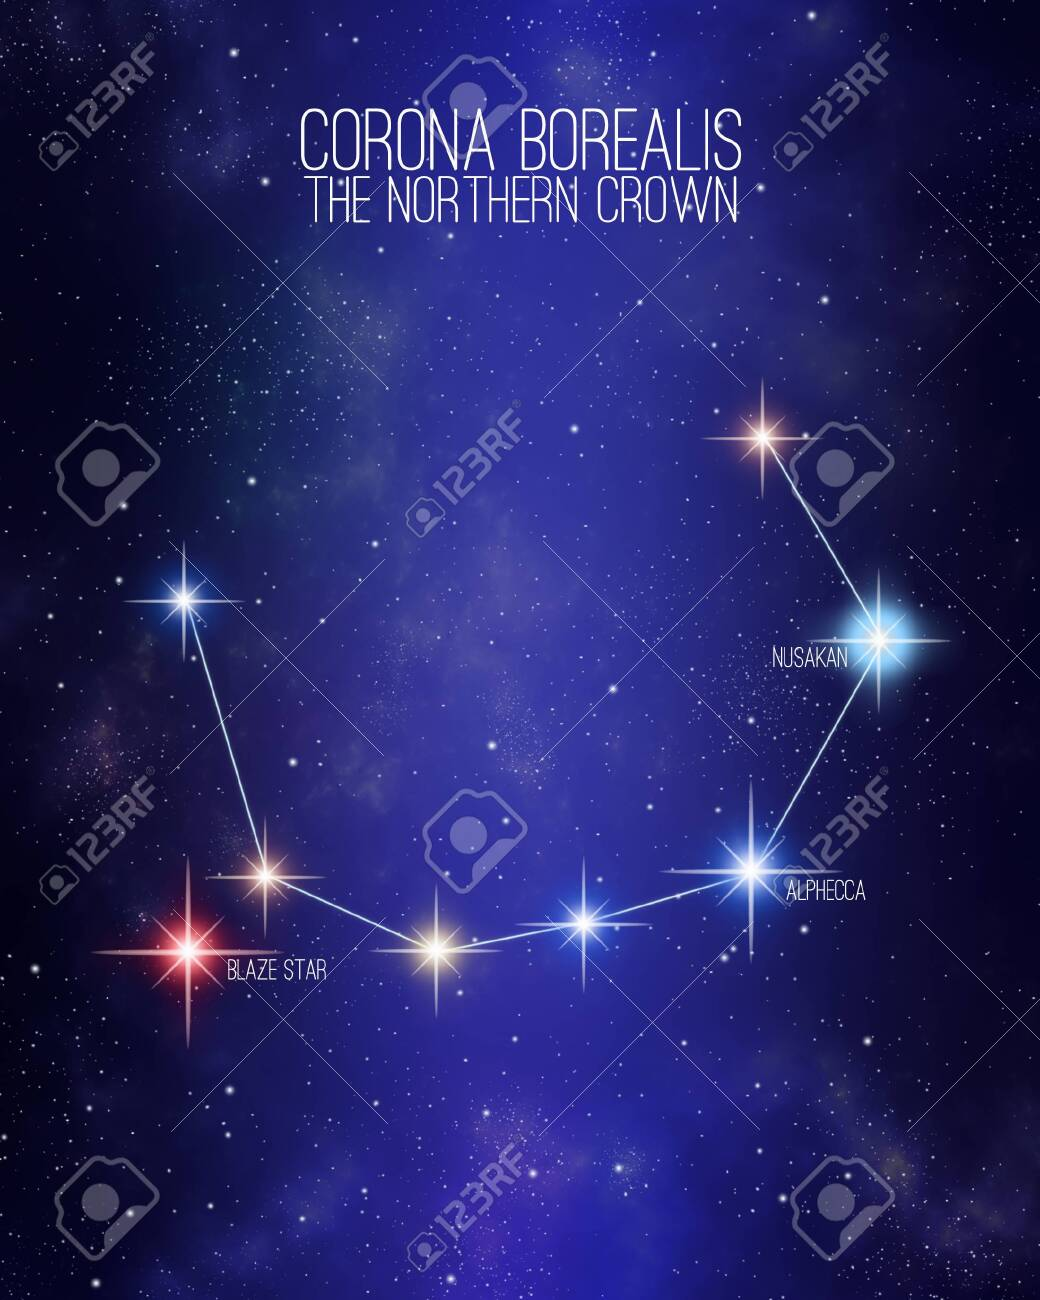 Corona Borealis The Northern Crown Constellation On A Starry Stock Photo Picture And Royalty Free Image Image 121849898